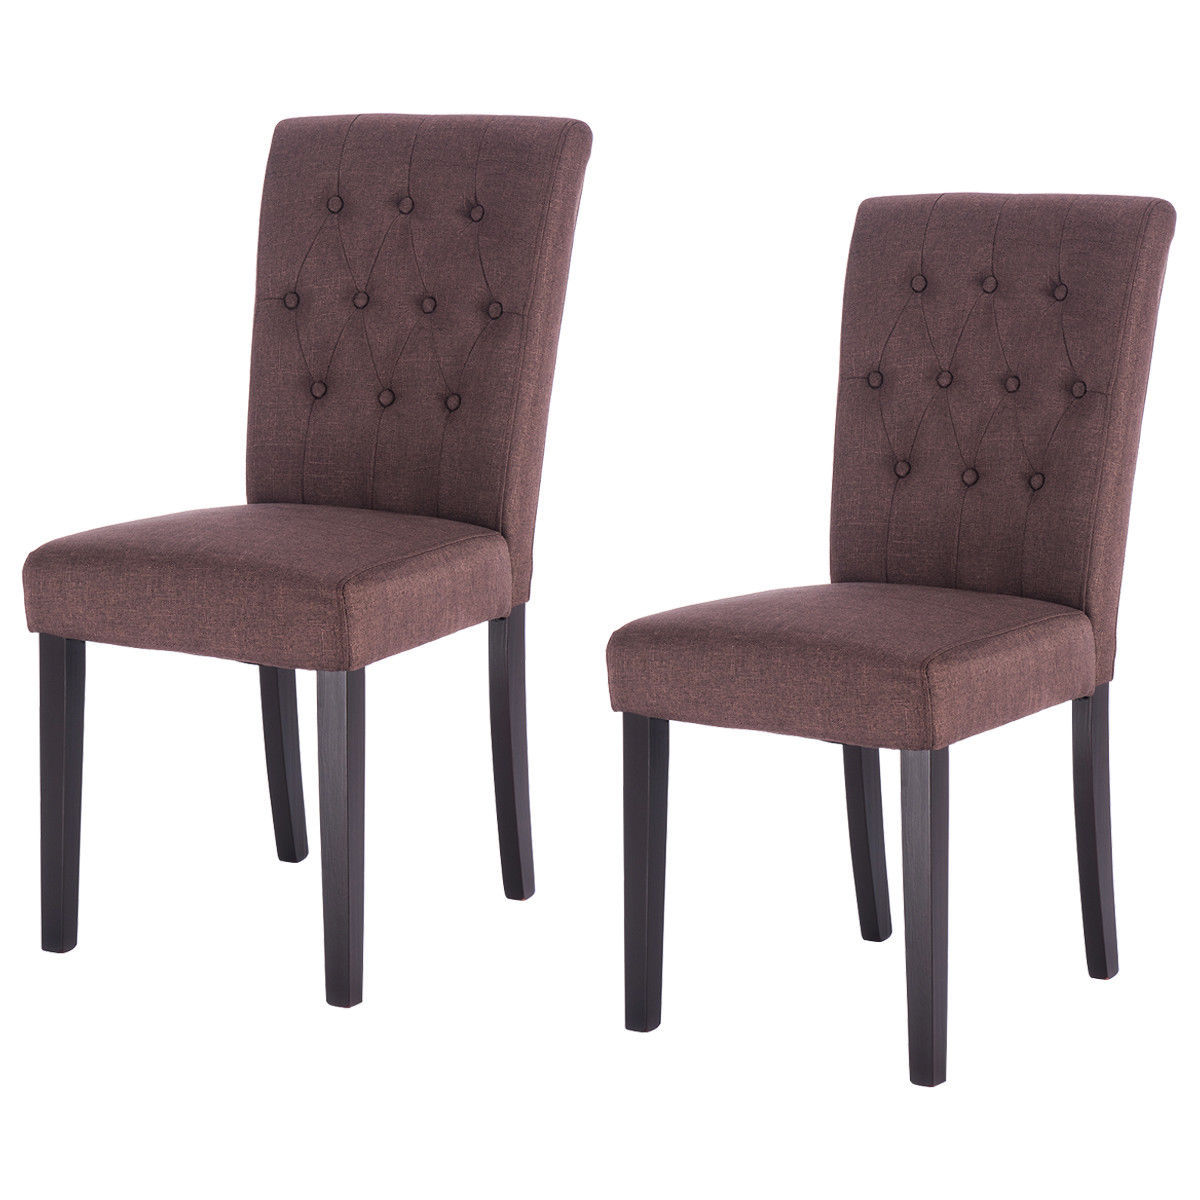 Us 87 99 Giantex Set Of 2 Modern Dining Chair Fabric Armless Accent Tufted Upholstered With Solid Wood Legs Furniture Hw52778bn On Aliexpress